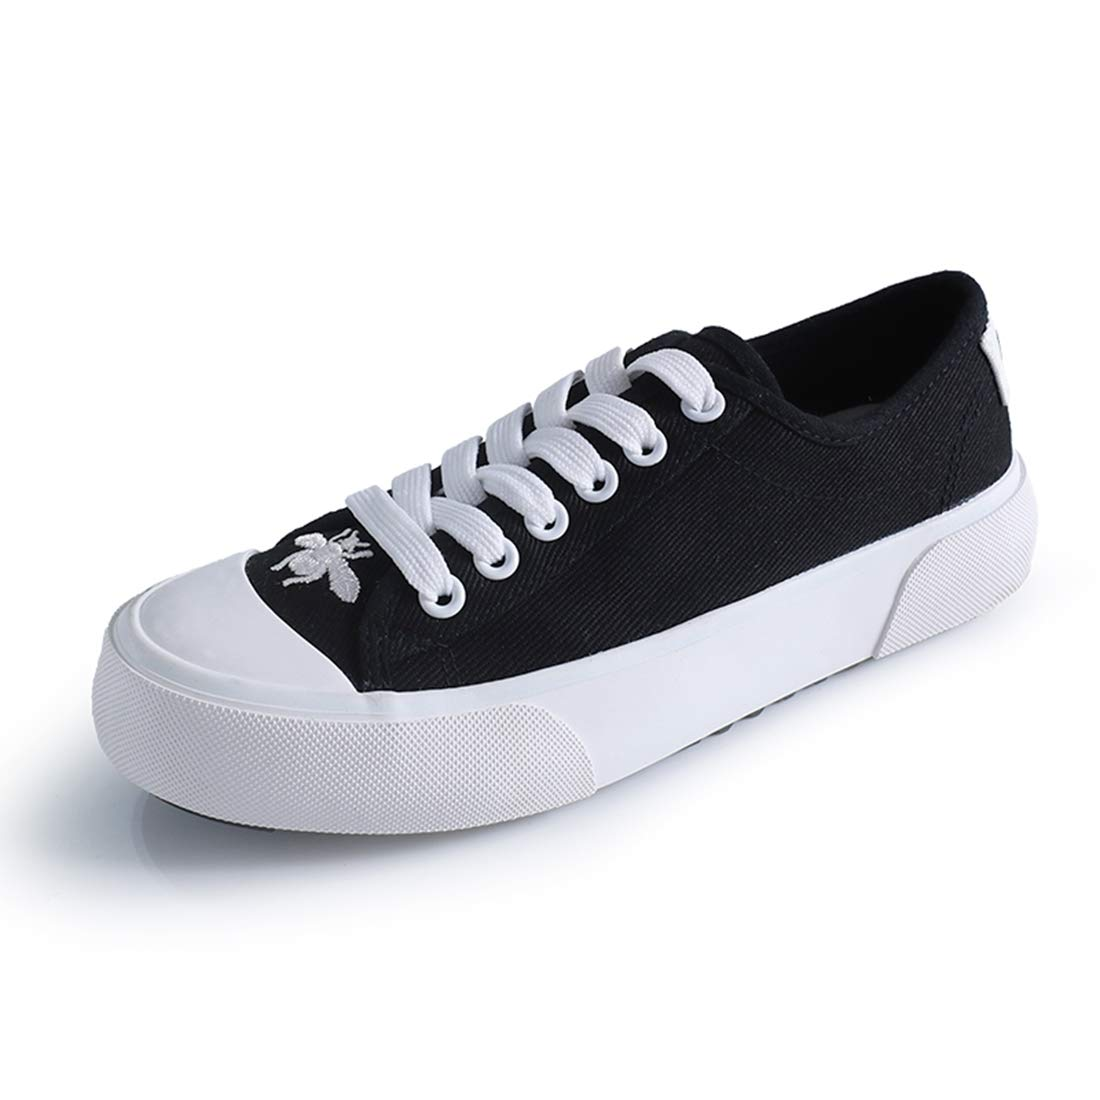 0681 Cool Soft Sneakers PU Injection Shoes Footwear for 25-27cm Feet